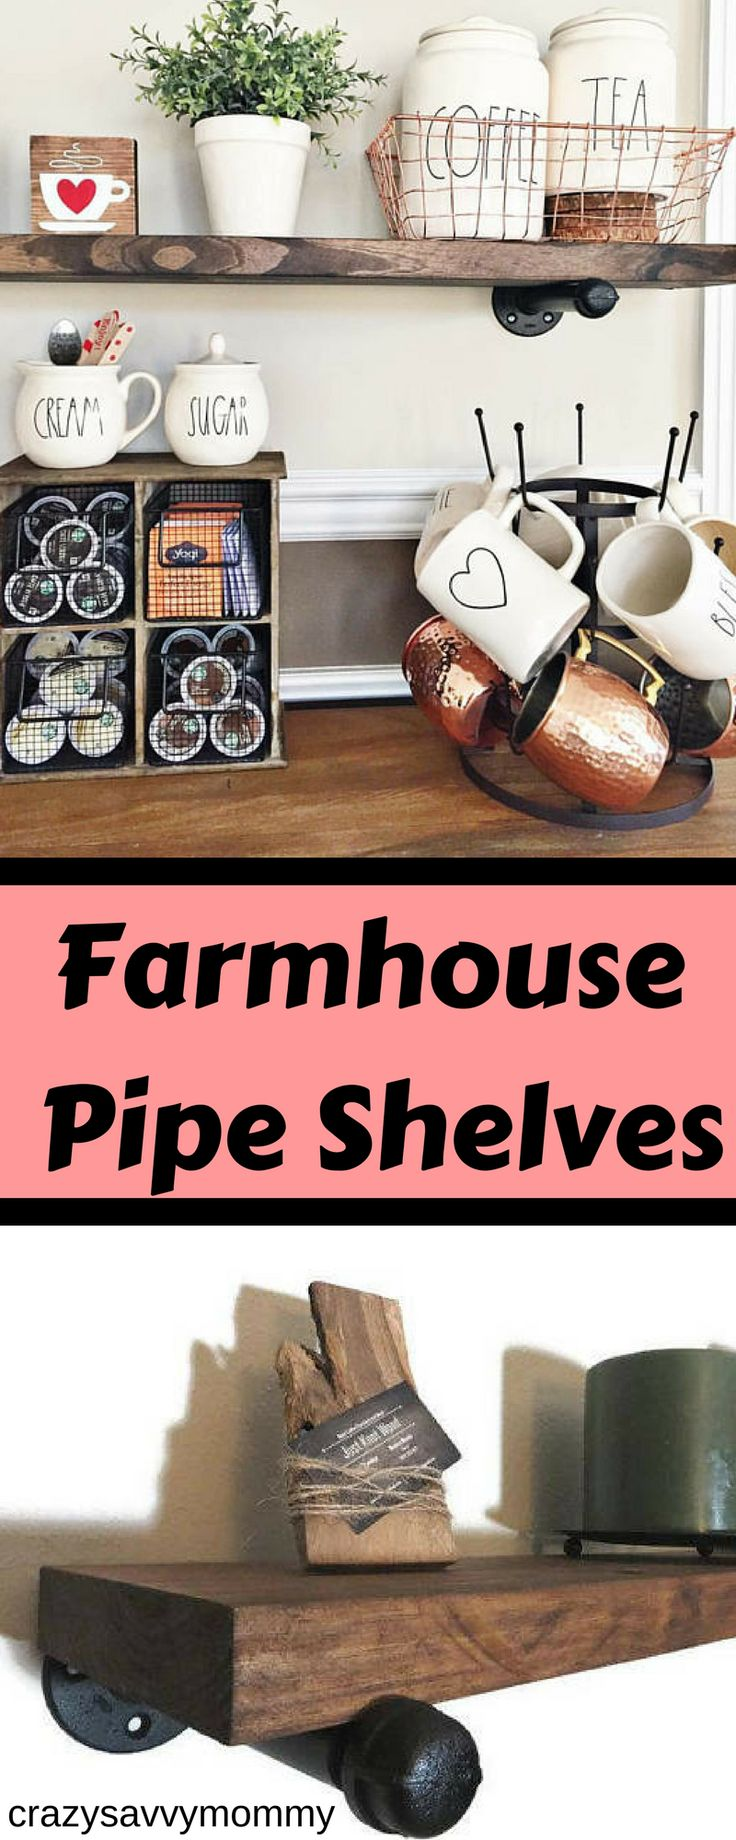 "BEAUTIFUL FARMHOUSE inspired floating industrial pipe shelves. Enjoy these floating shelves in any room to add a rustic and industrial look. These shelves are easy to install and include all needed hardware for a fast installation. Each Shelf is made of 100% solid wood and 3/4"" painted steel brackets. Click the link to buy them NOW at Etsy.com! #farmhousedecor #diyroomdecor #rustichomedecor #homedecorideas #kitchenideas #ad"